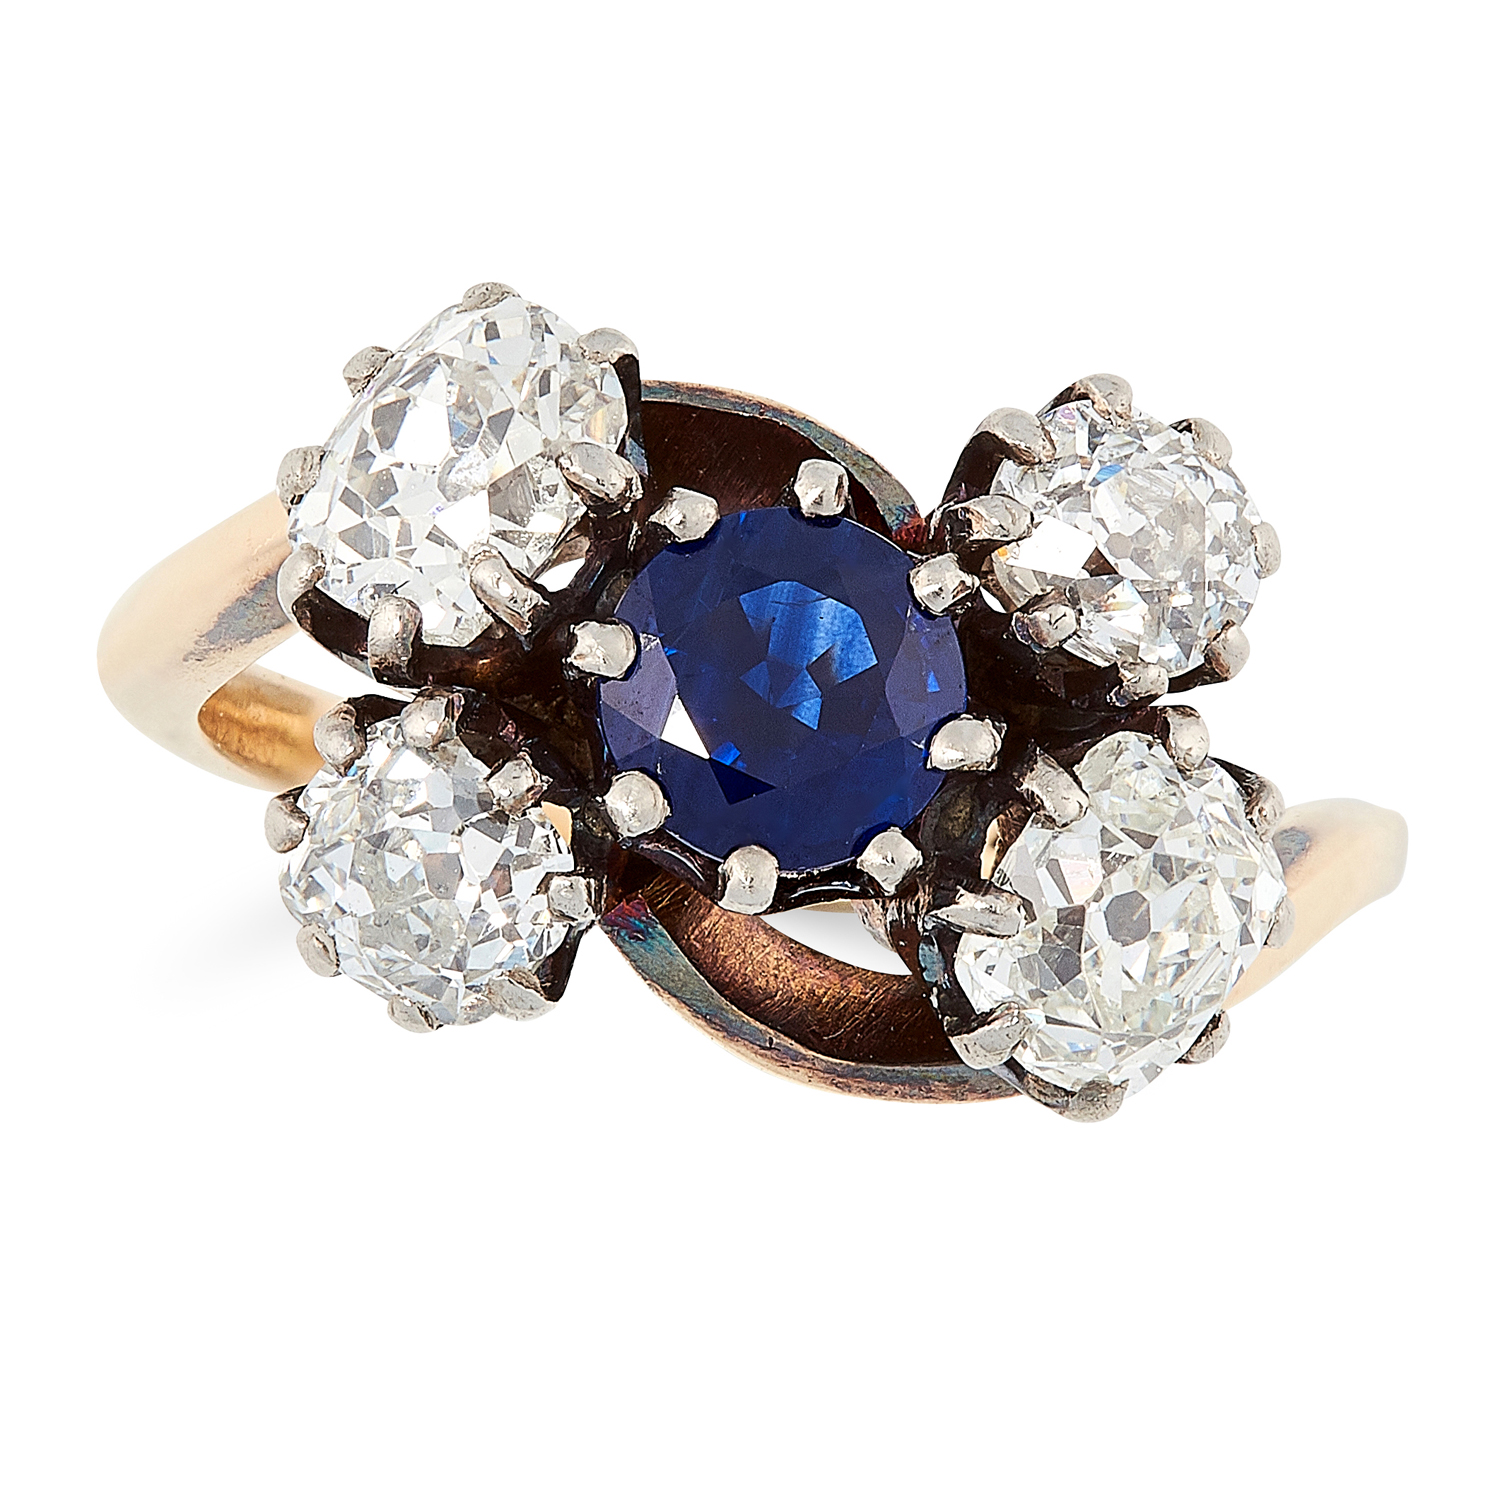 ANTIQUE SAPPHIRE AND DIAMOND RING in 18ct yellow g